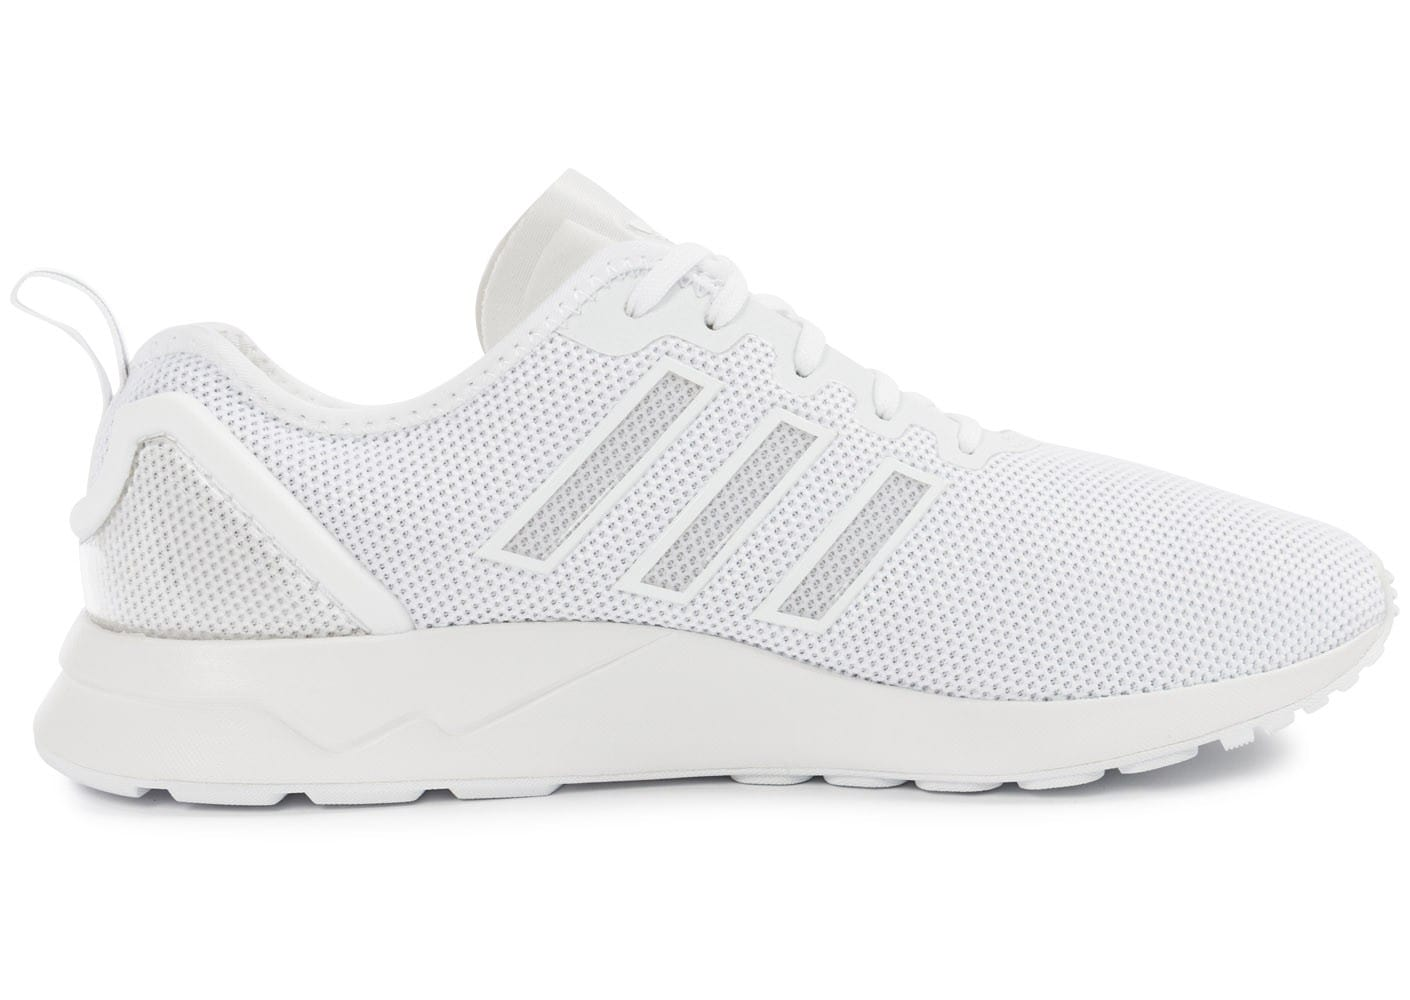 Chaussures Adidas ZX blanches Fashion homme